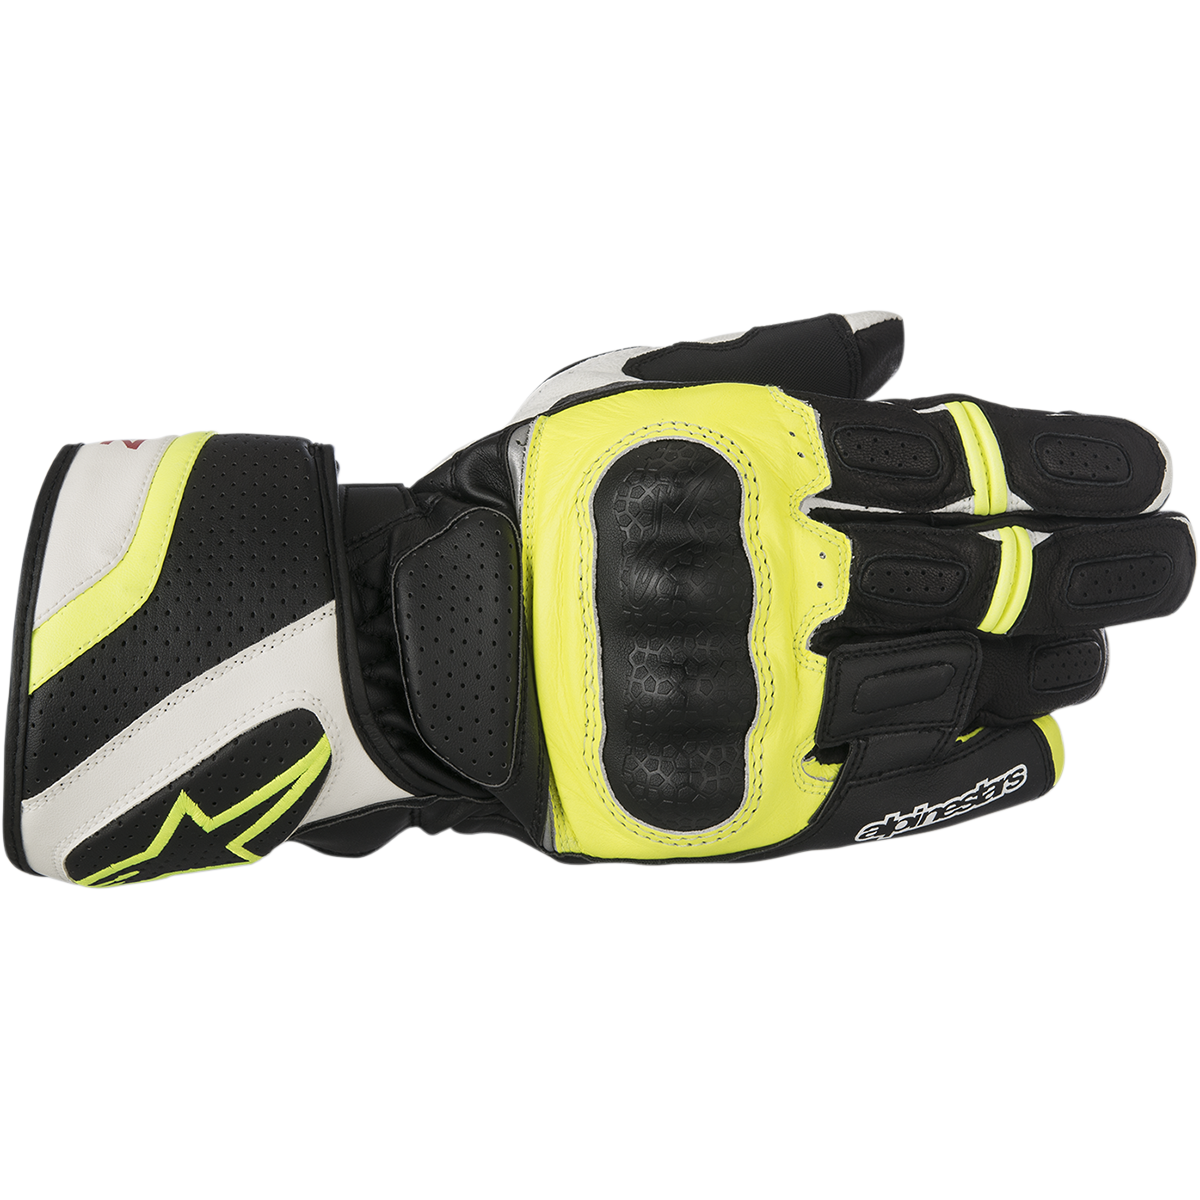 SP-Z Drystar<sup>&reg;</sup> Gloves